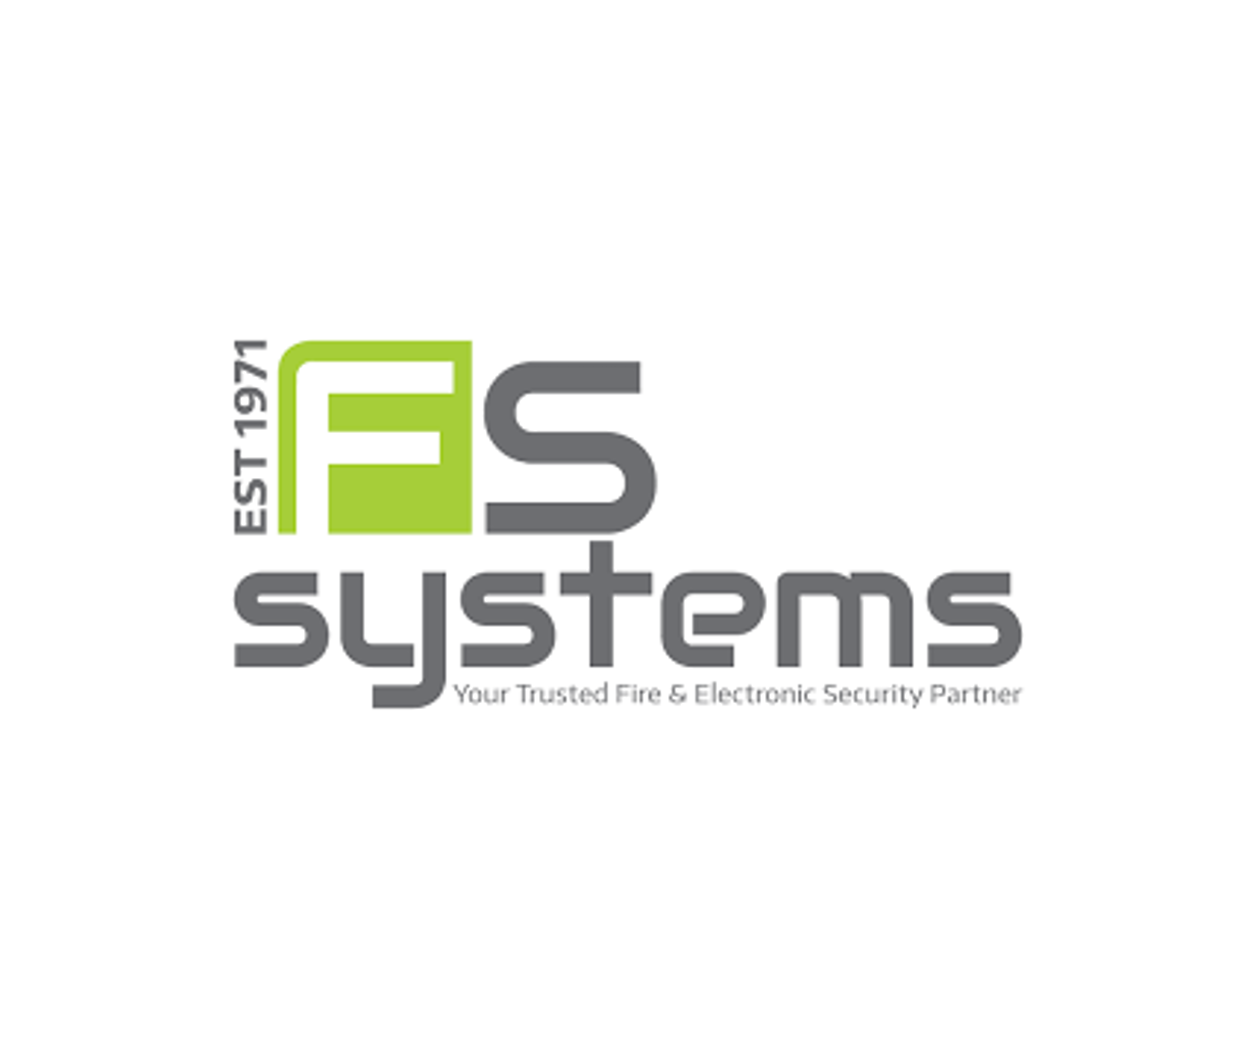 DLK Group has provided FS Systems (Pty) Ltd with hardware and support services over the past 4 years, including supply of desktop PCs for various projects. It is our pleasure to recommend the services of DLK Group to new and future clients.